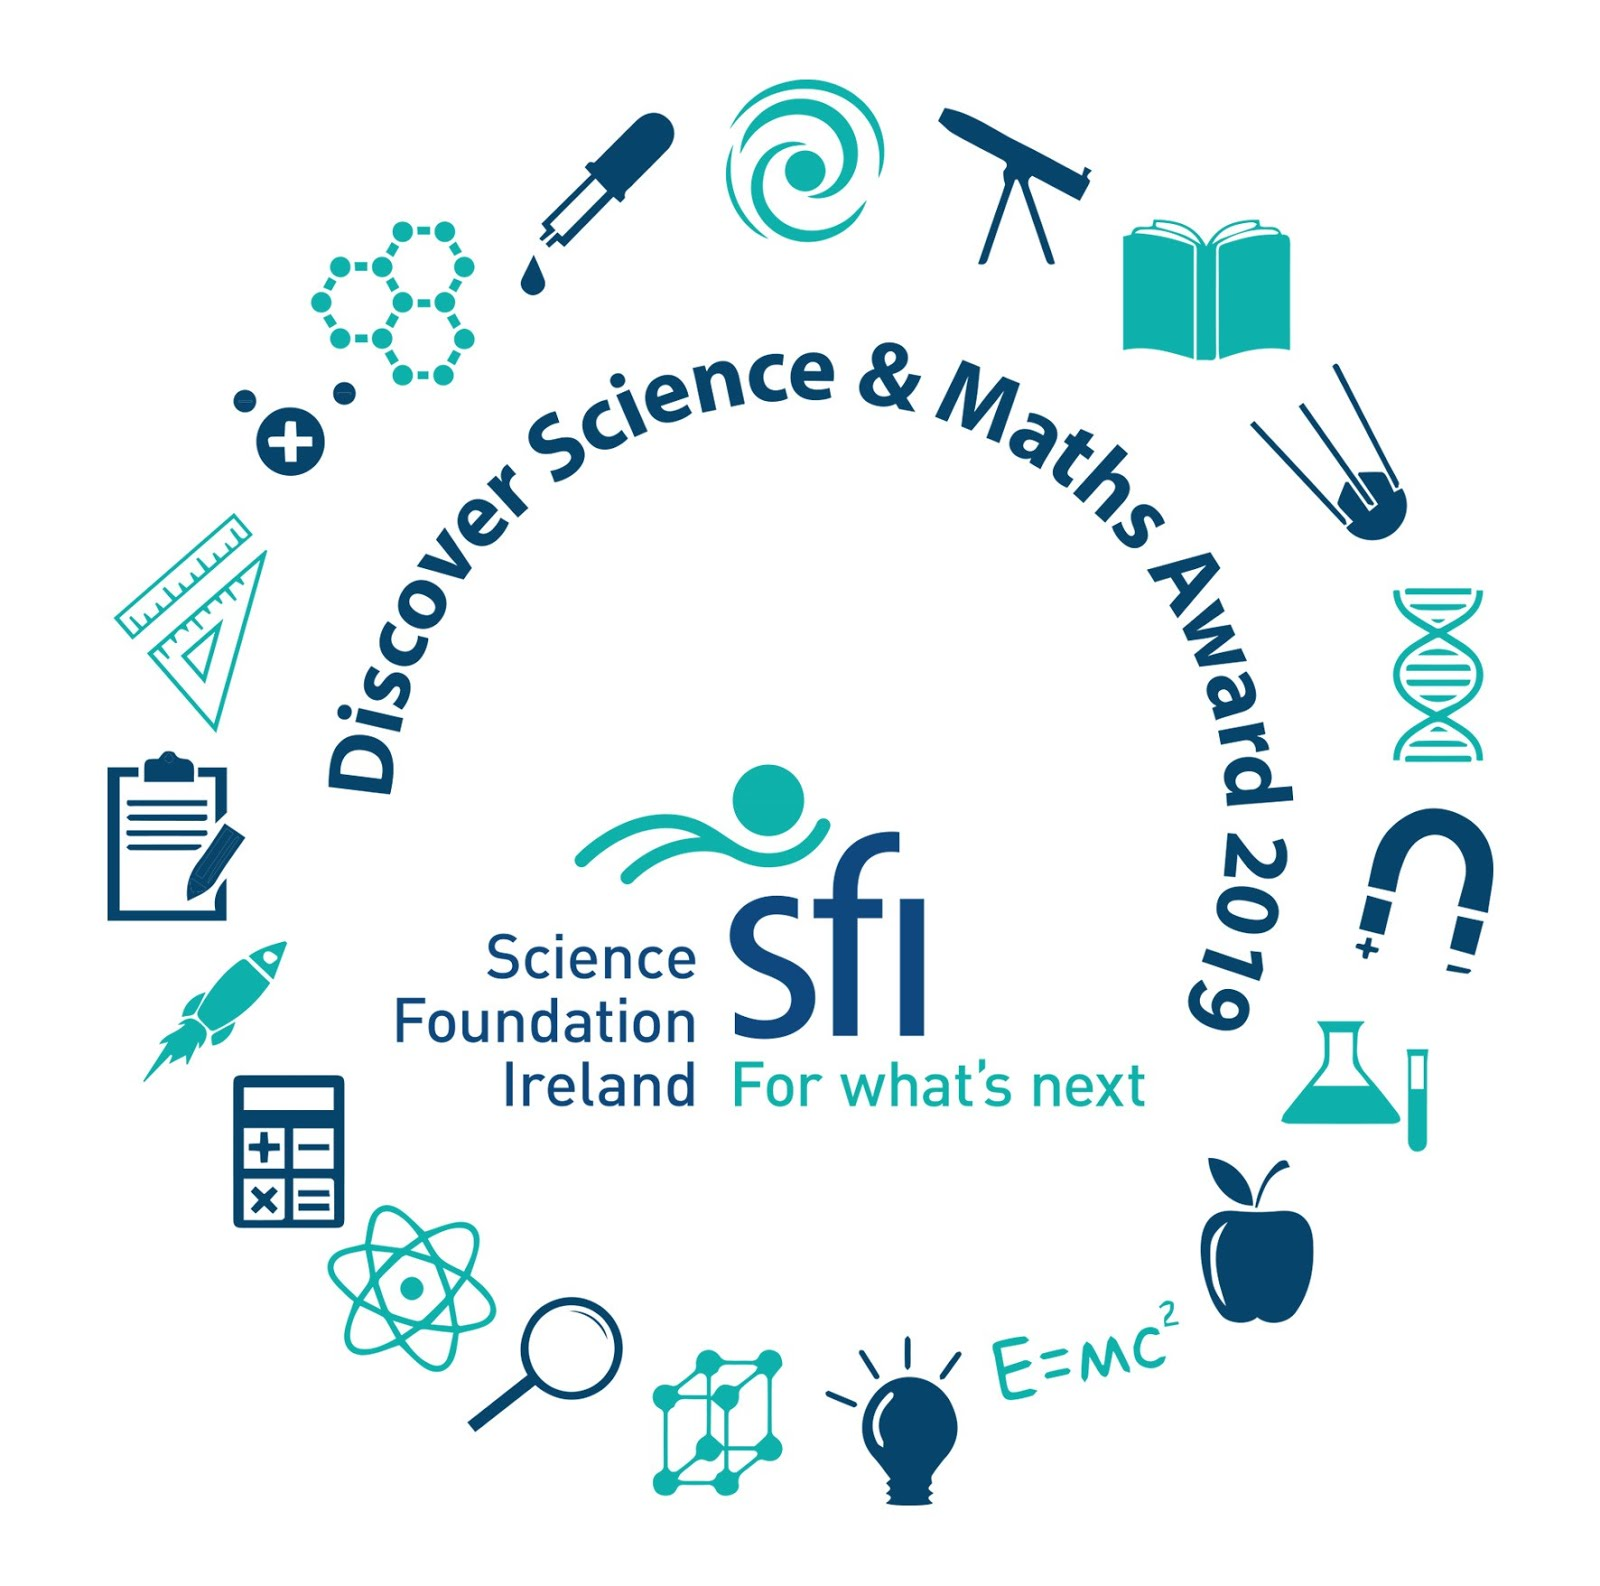 Discover Primary Maths and Science Plaque - STEM Excellence award 2018/2019